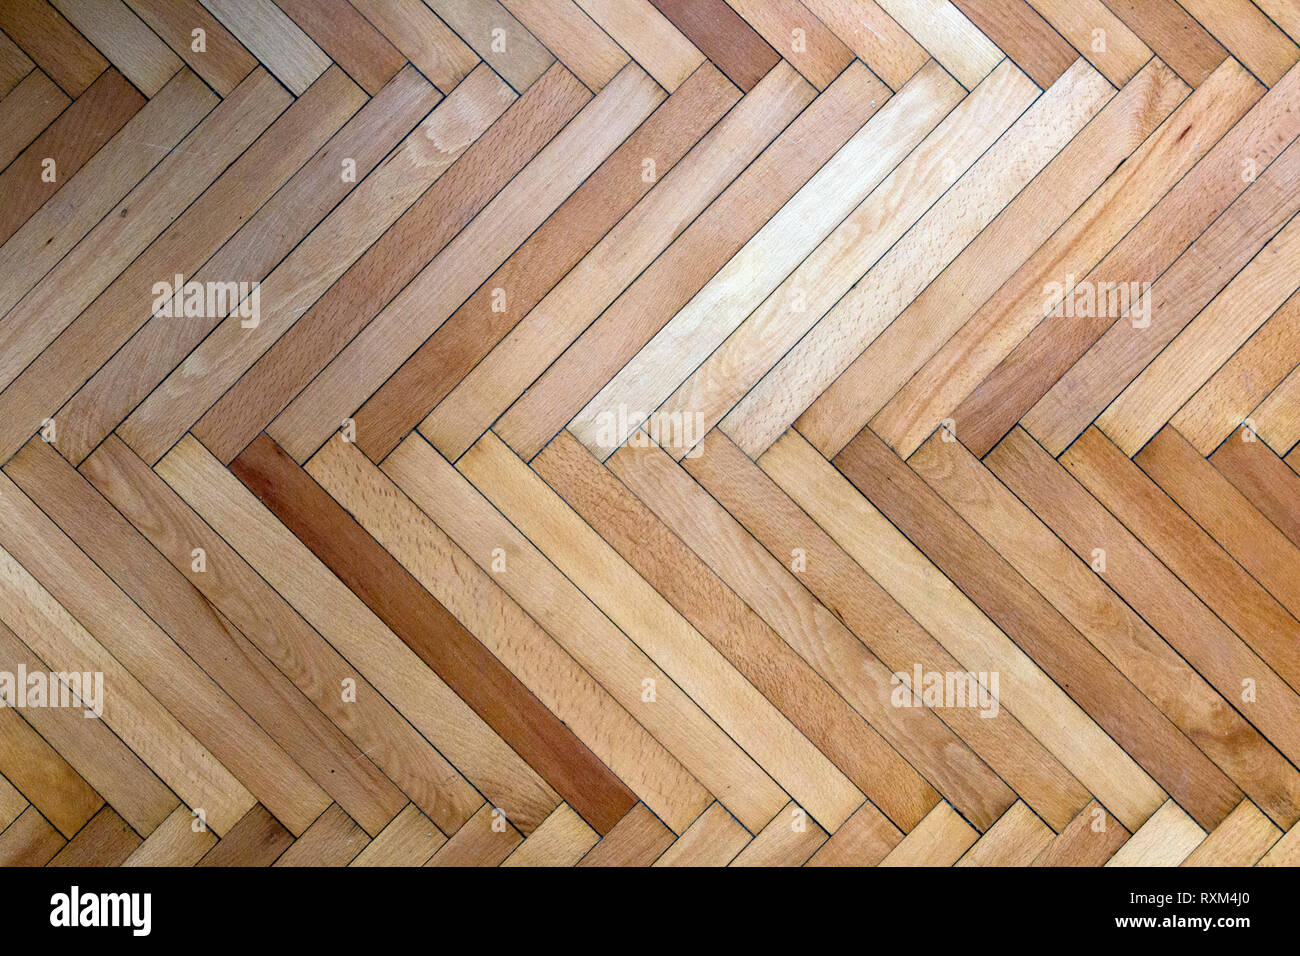 Wooden flooring in fishback design seen from top. A popular interior ground element of the past now mostly being replaced with less durable materials. Stock Photo